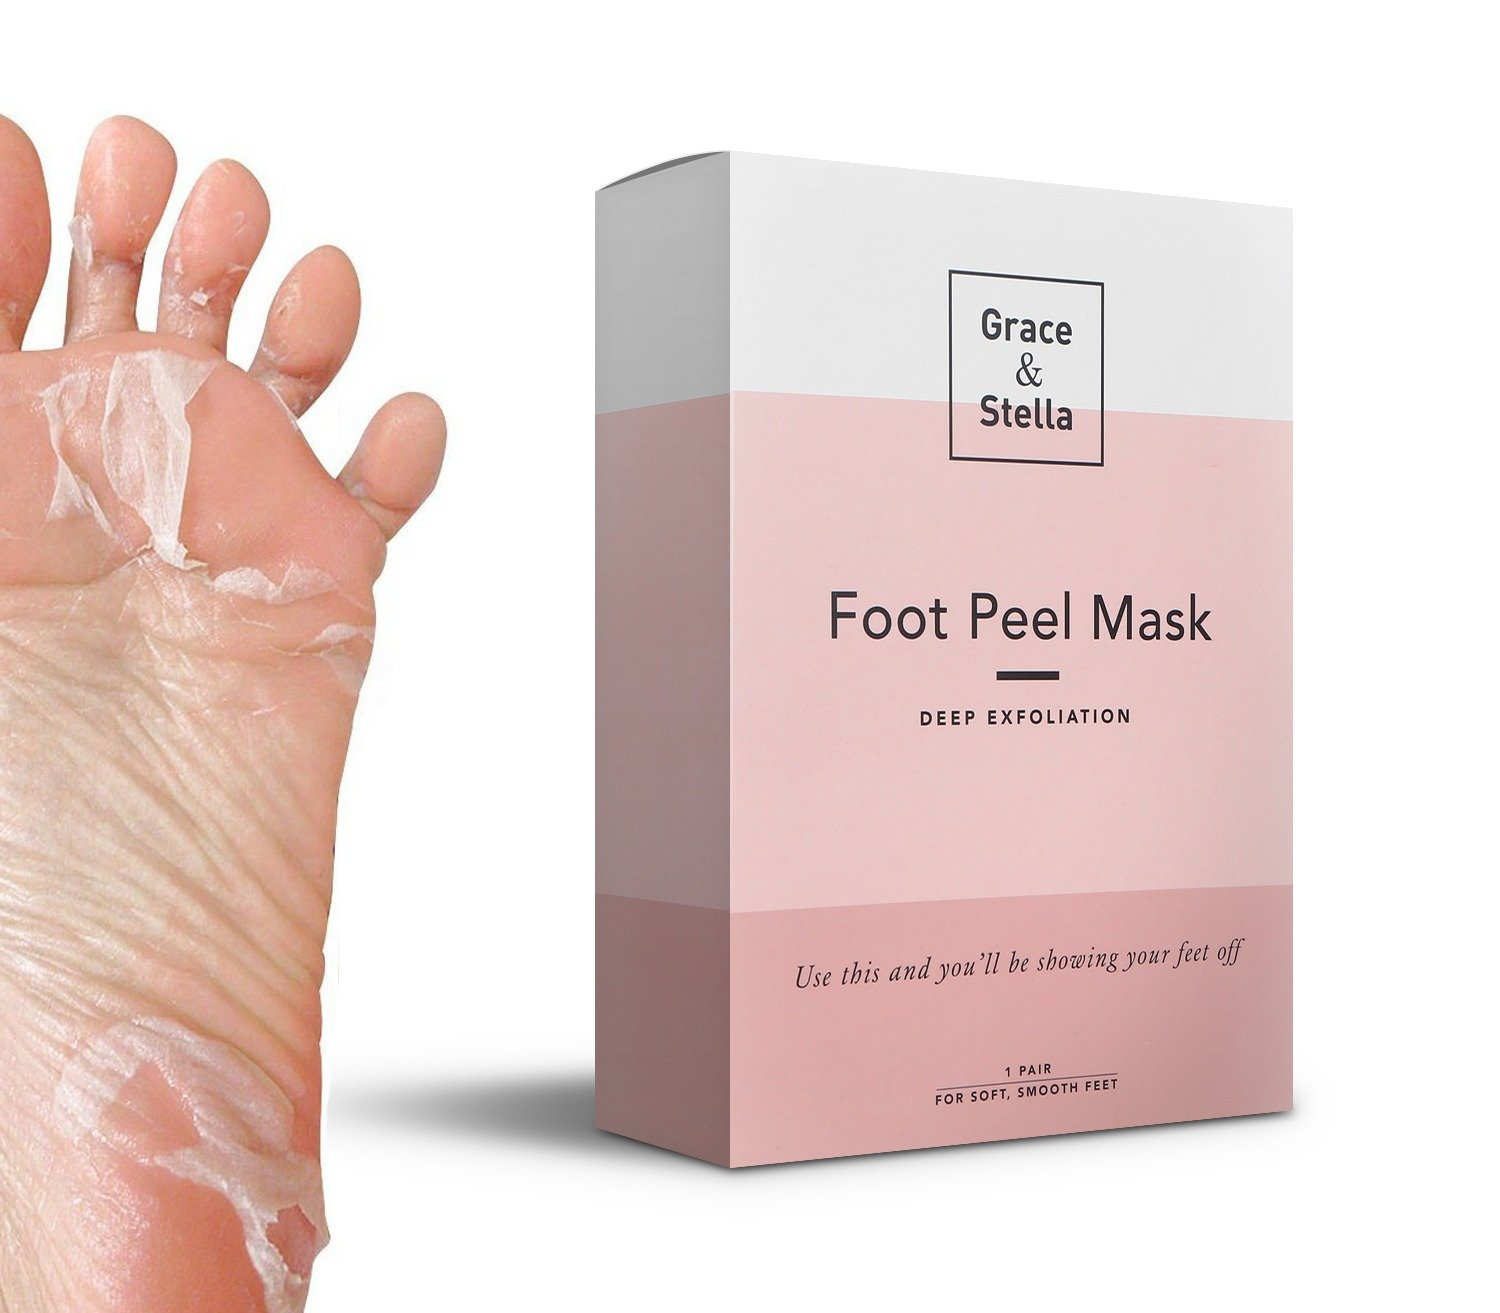 Dr Pedicure Foot Peeling Mask By Grace Stella Feet Peel Booties To Exfoliate Dead Skin Old Callused Heels Natural Exfoliating Treatment For